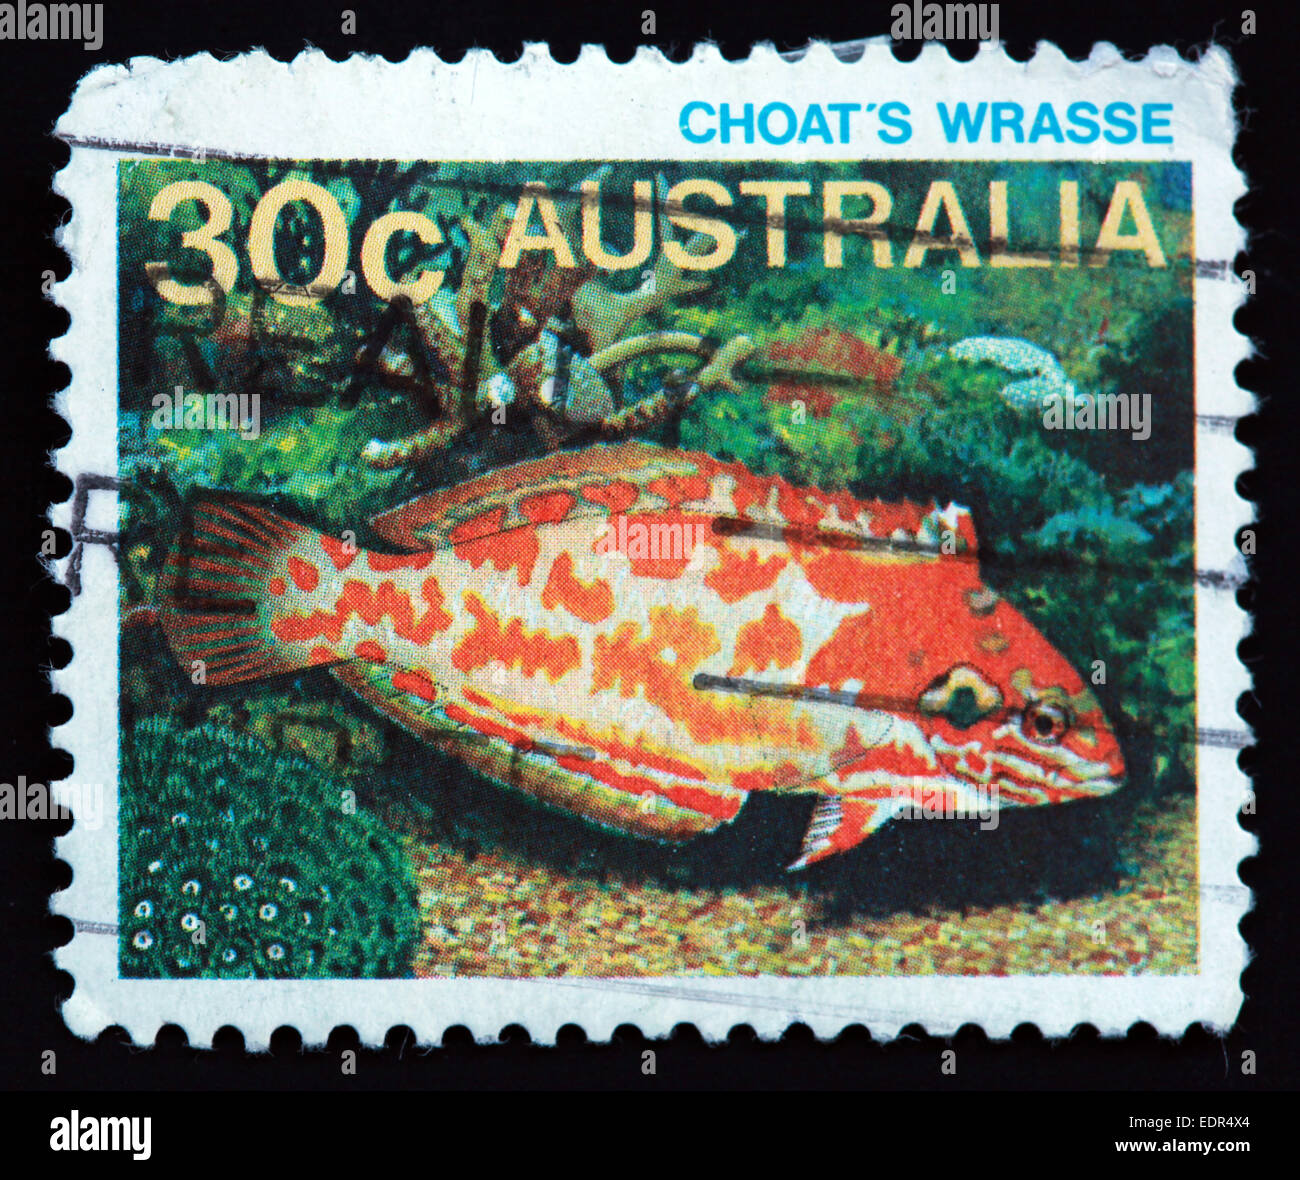 Used and postmarked Australia / Austrailian Stamp Choat's Wrasse Stock Photo